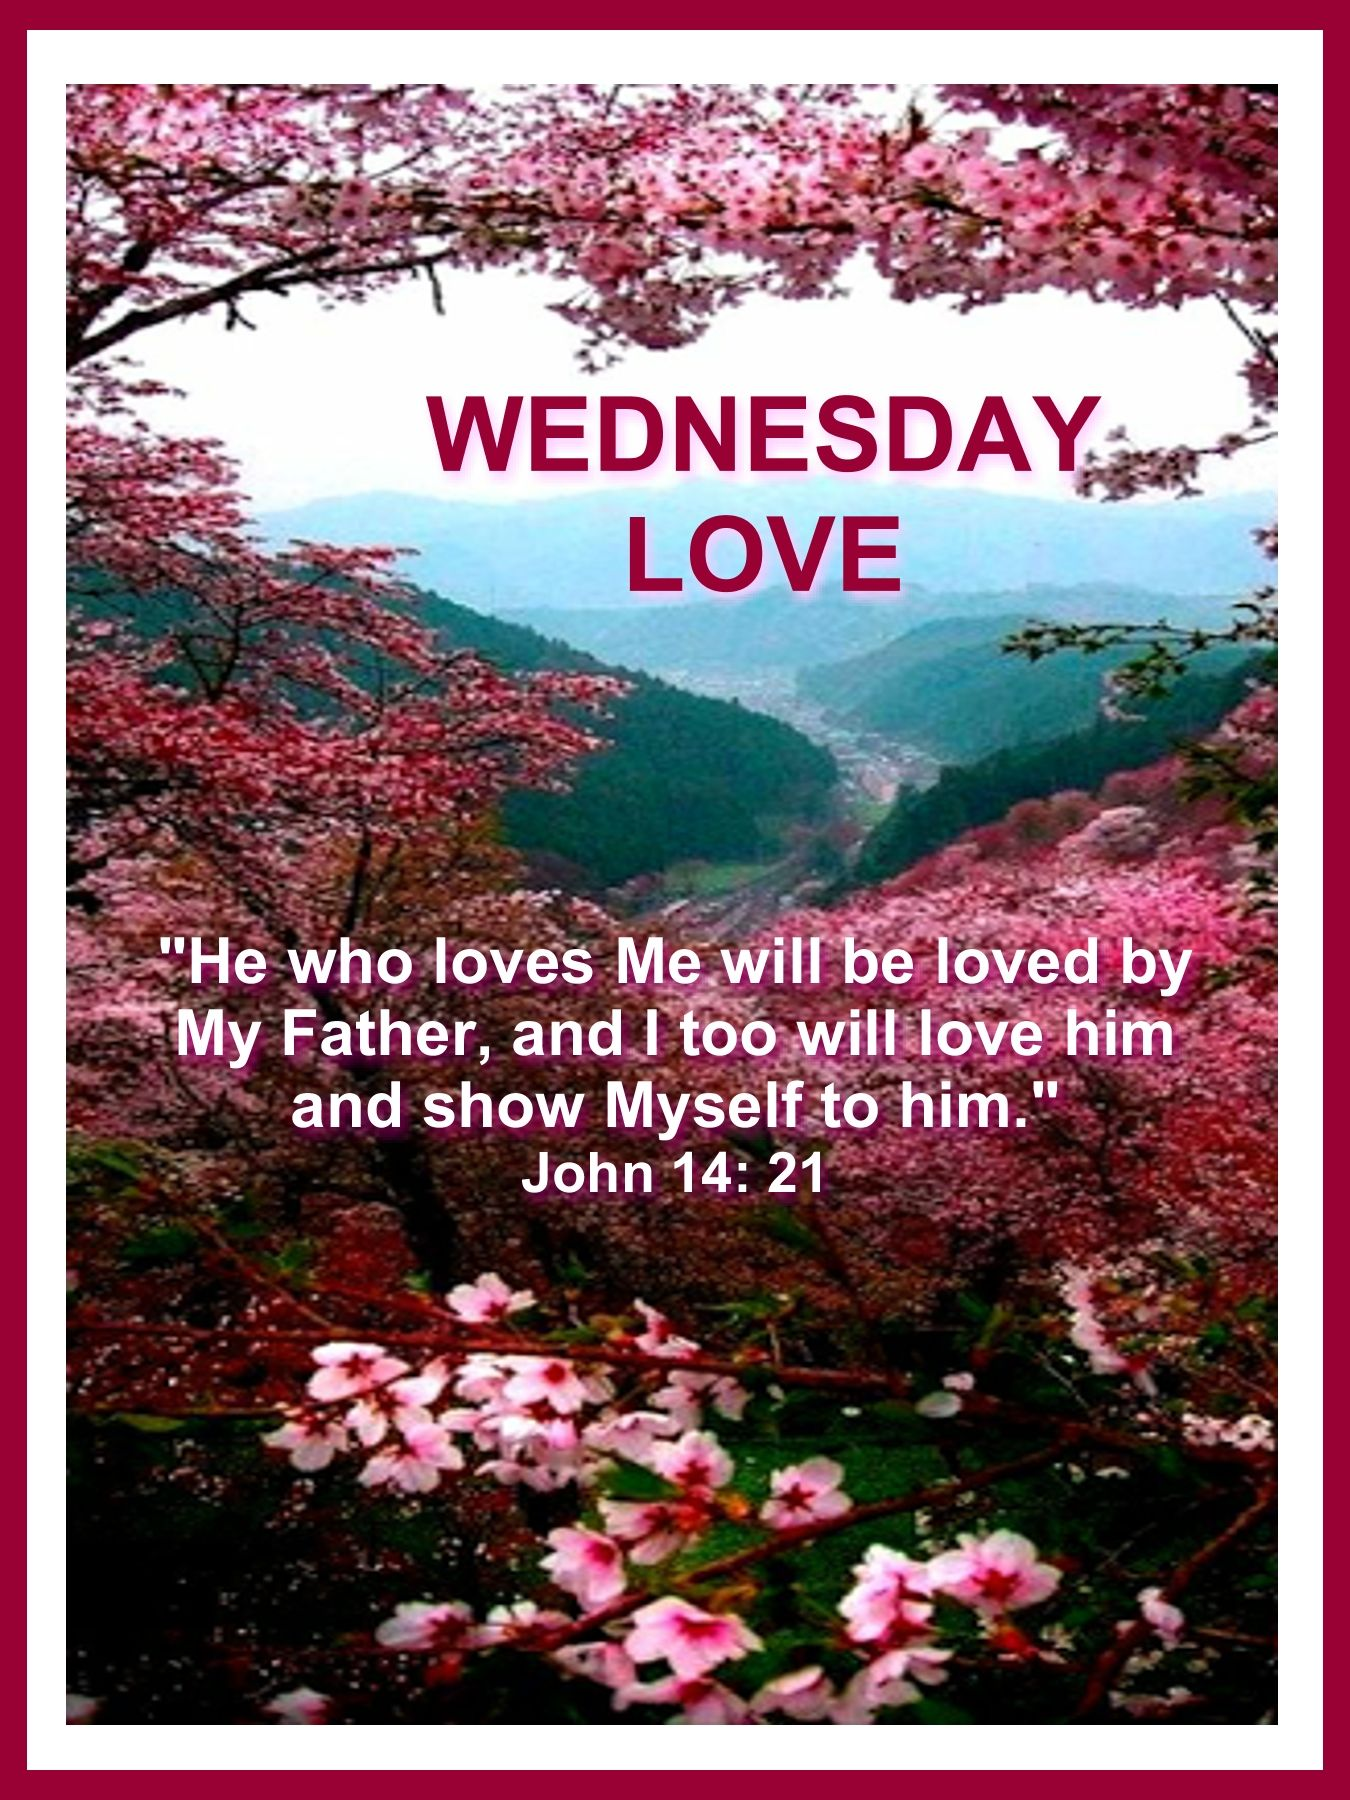 Pin by rosa well on wednesday blessings pinterest wednesday wednesday greetings wednesday morning blessings verses amen kristyandbryce Images